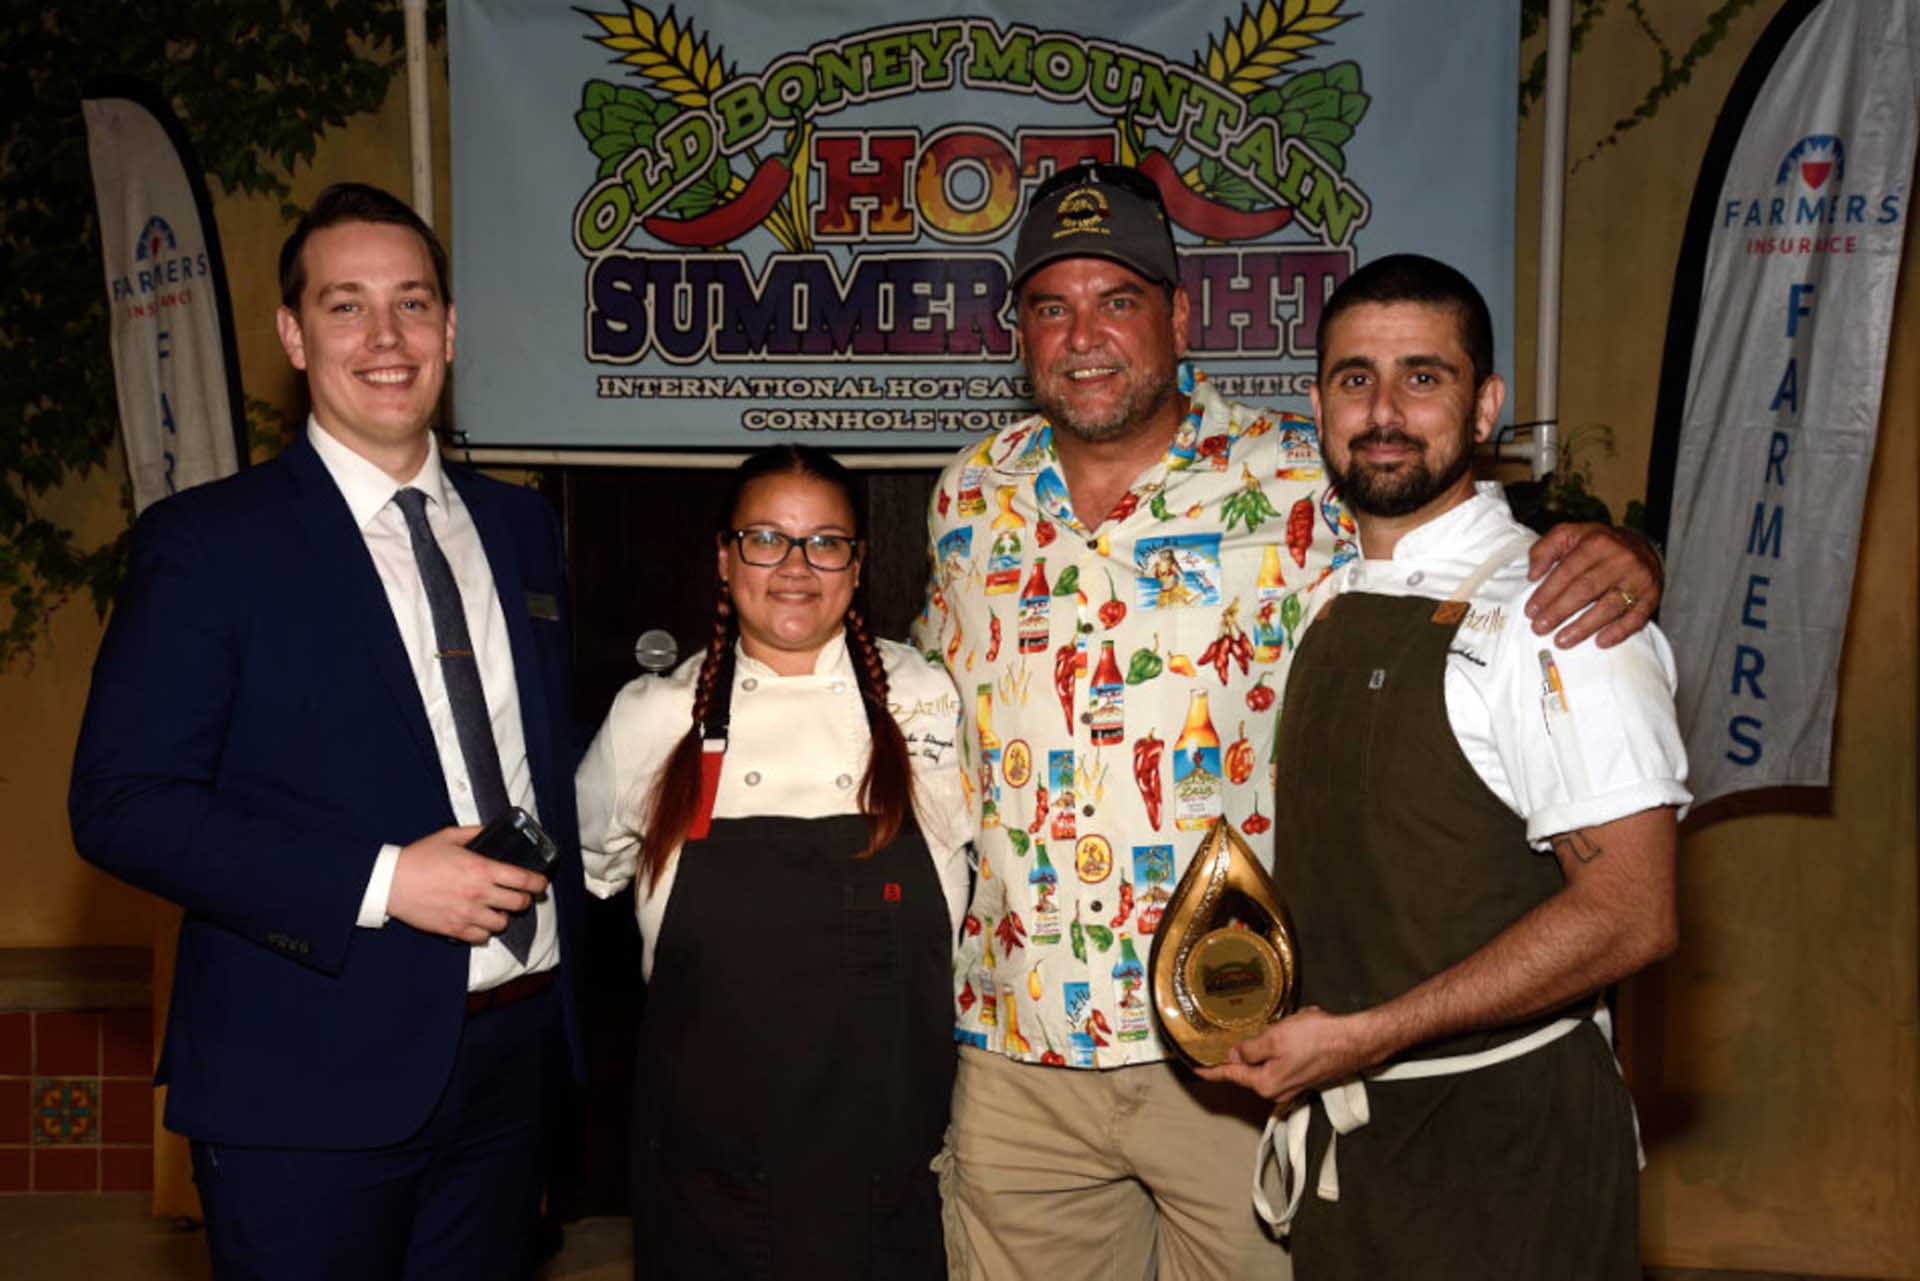 Bazille chef wins award